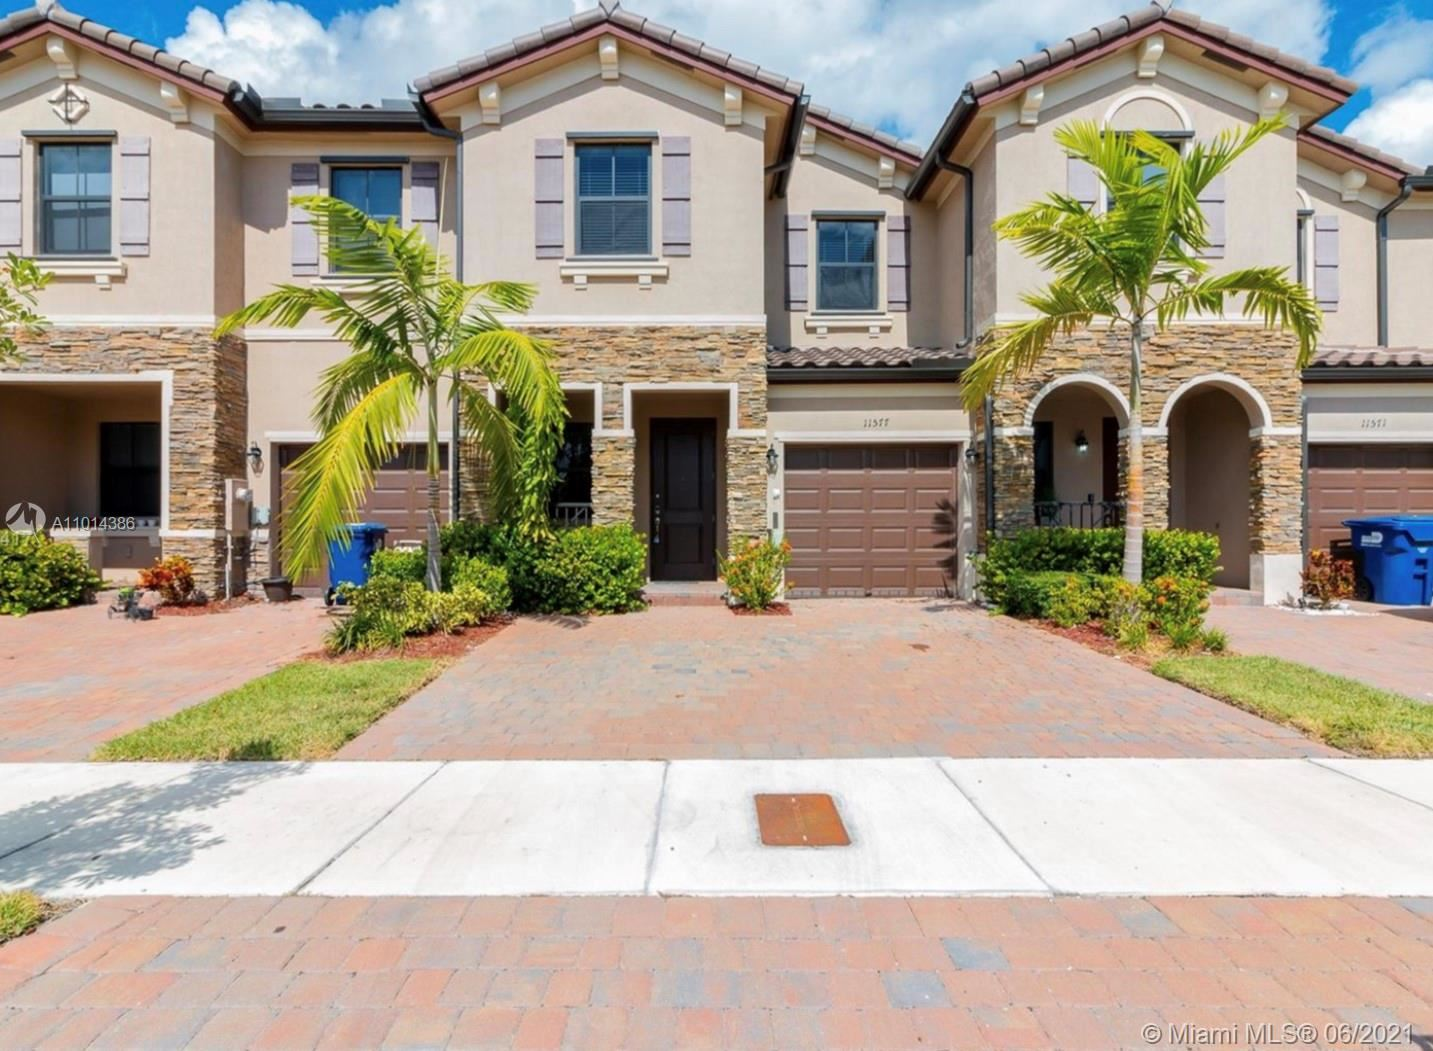 11577 SW 253rd St, Homestead, FL 33032 - #: A11014386